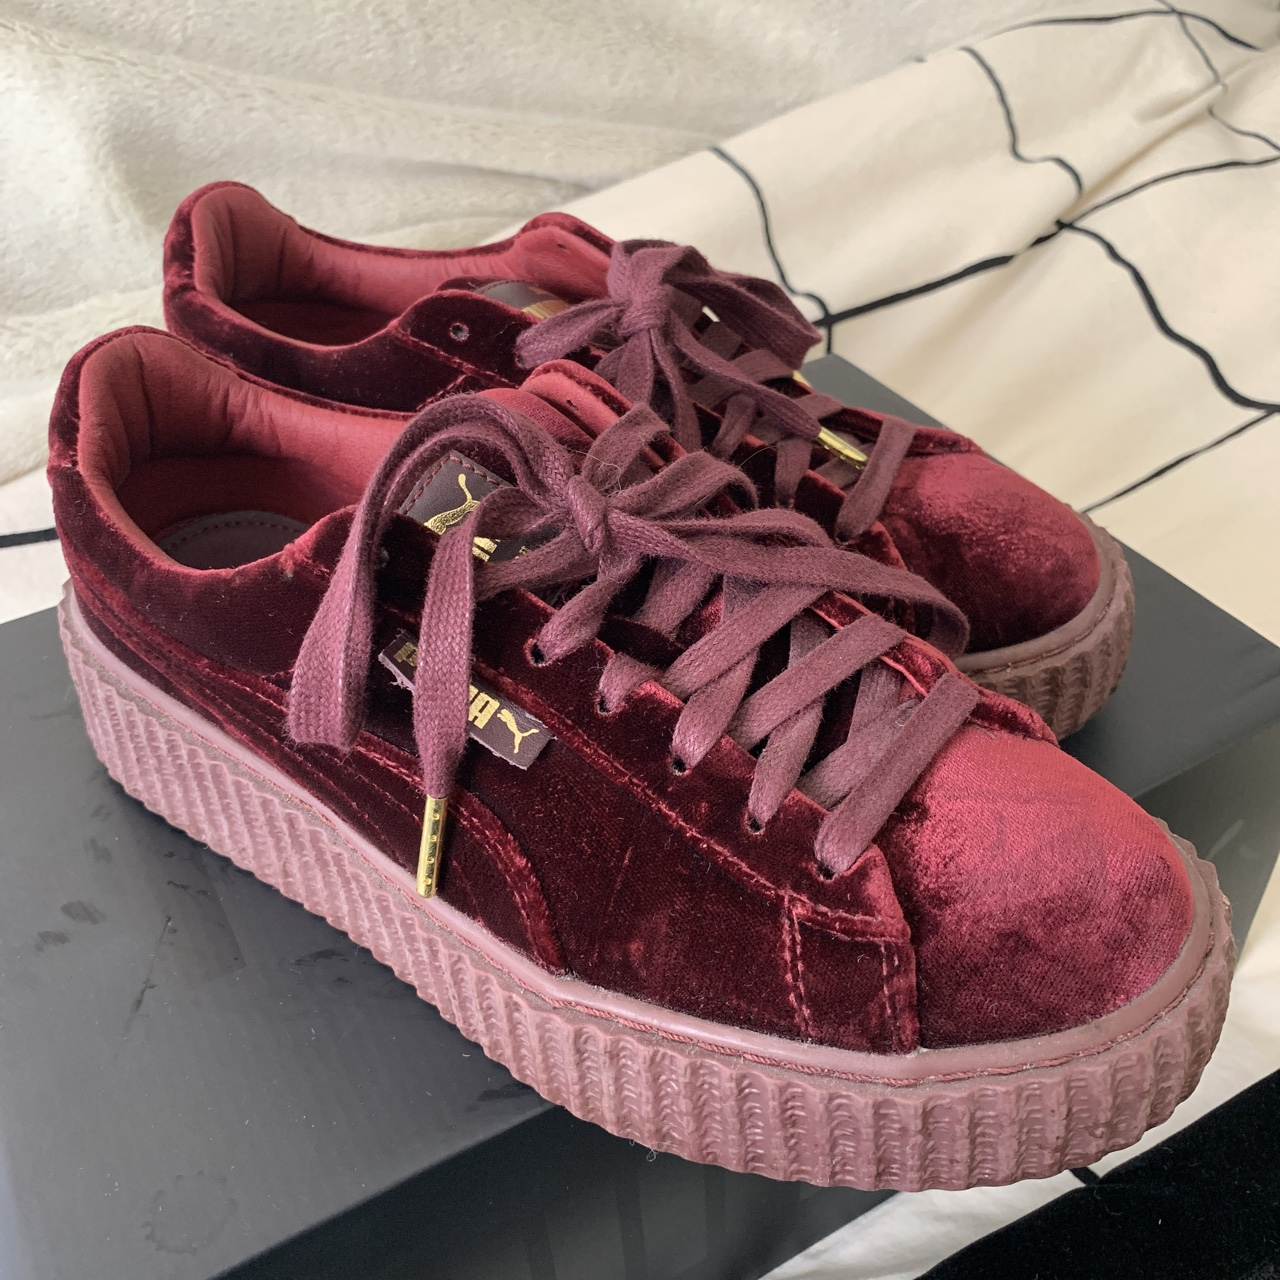 cheap for discount d699e cd08b Puma creepers. Rihanna red velvet creepers. Size... - Depop